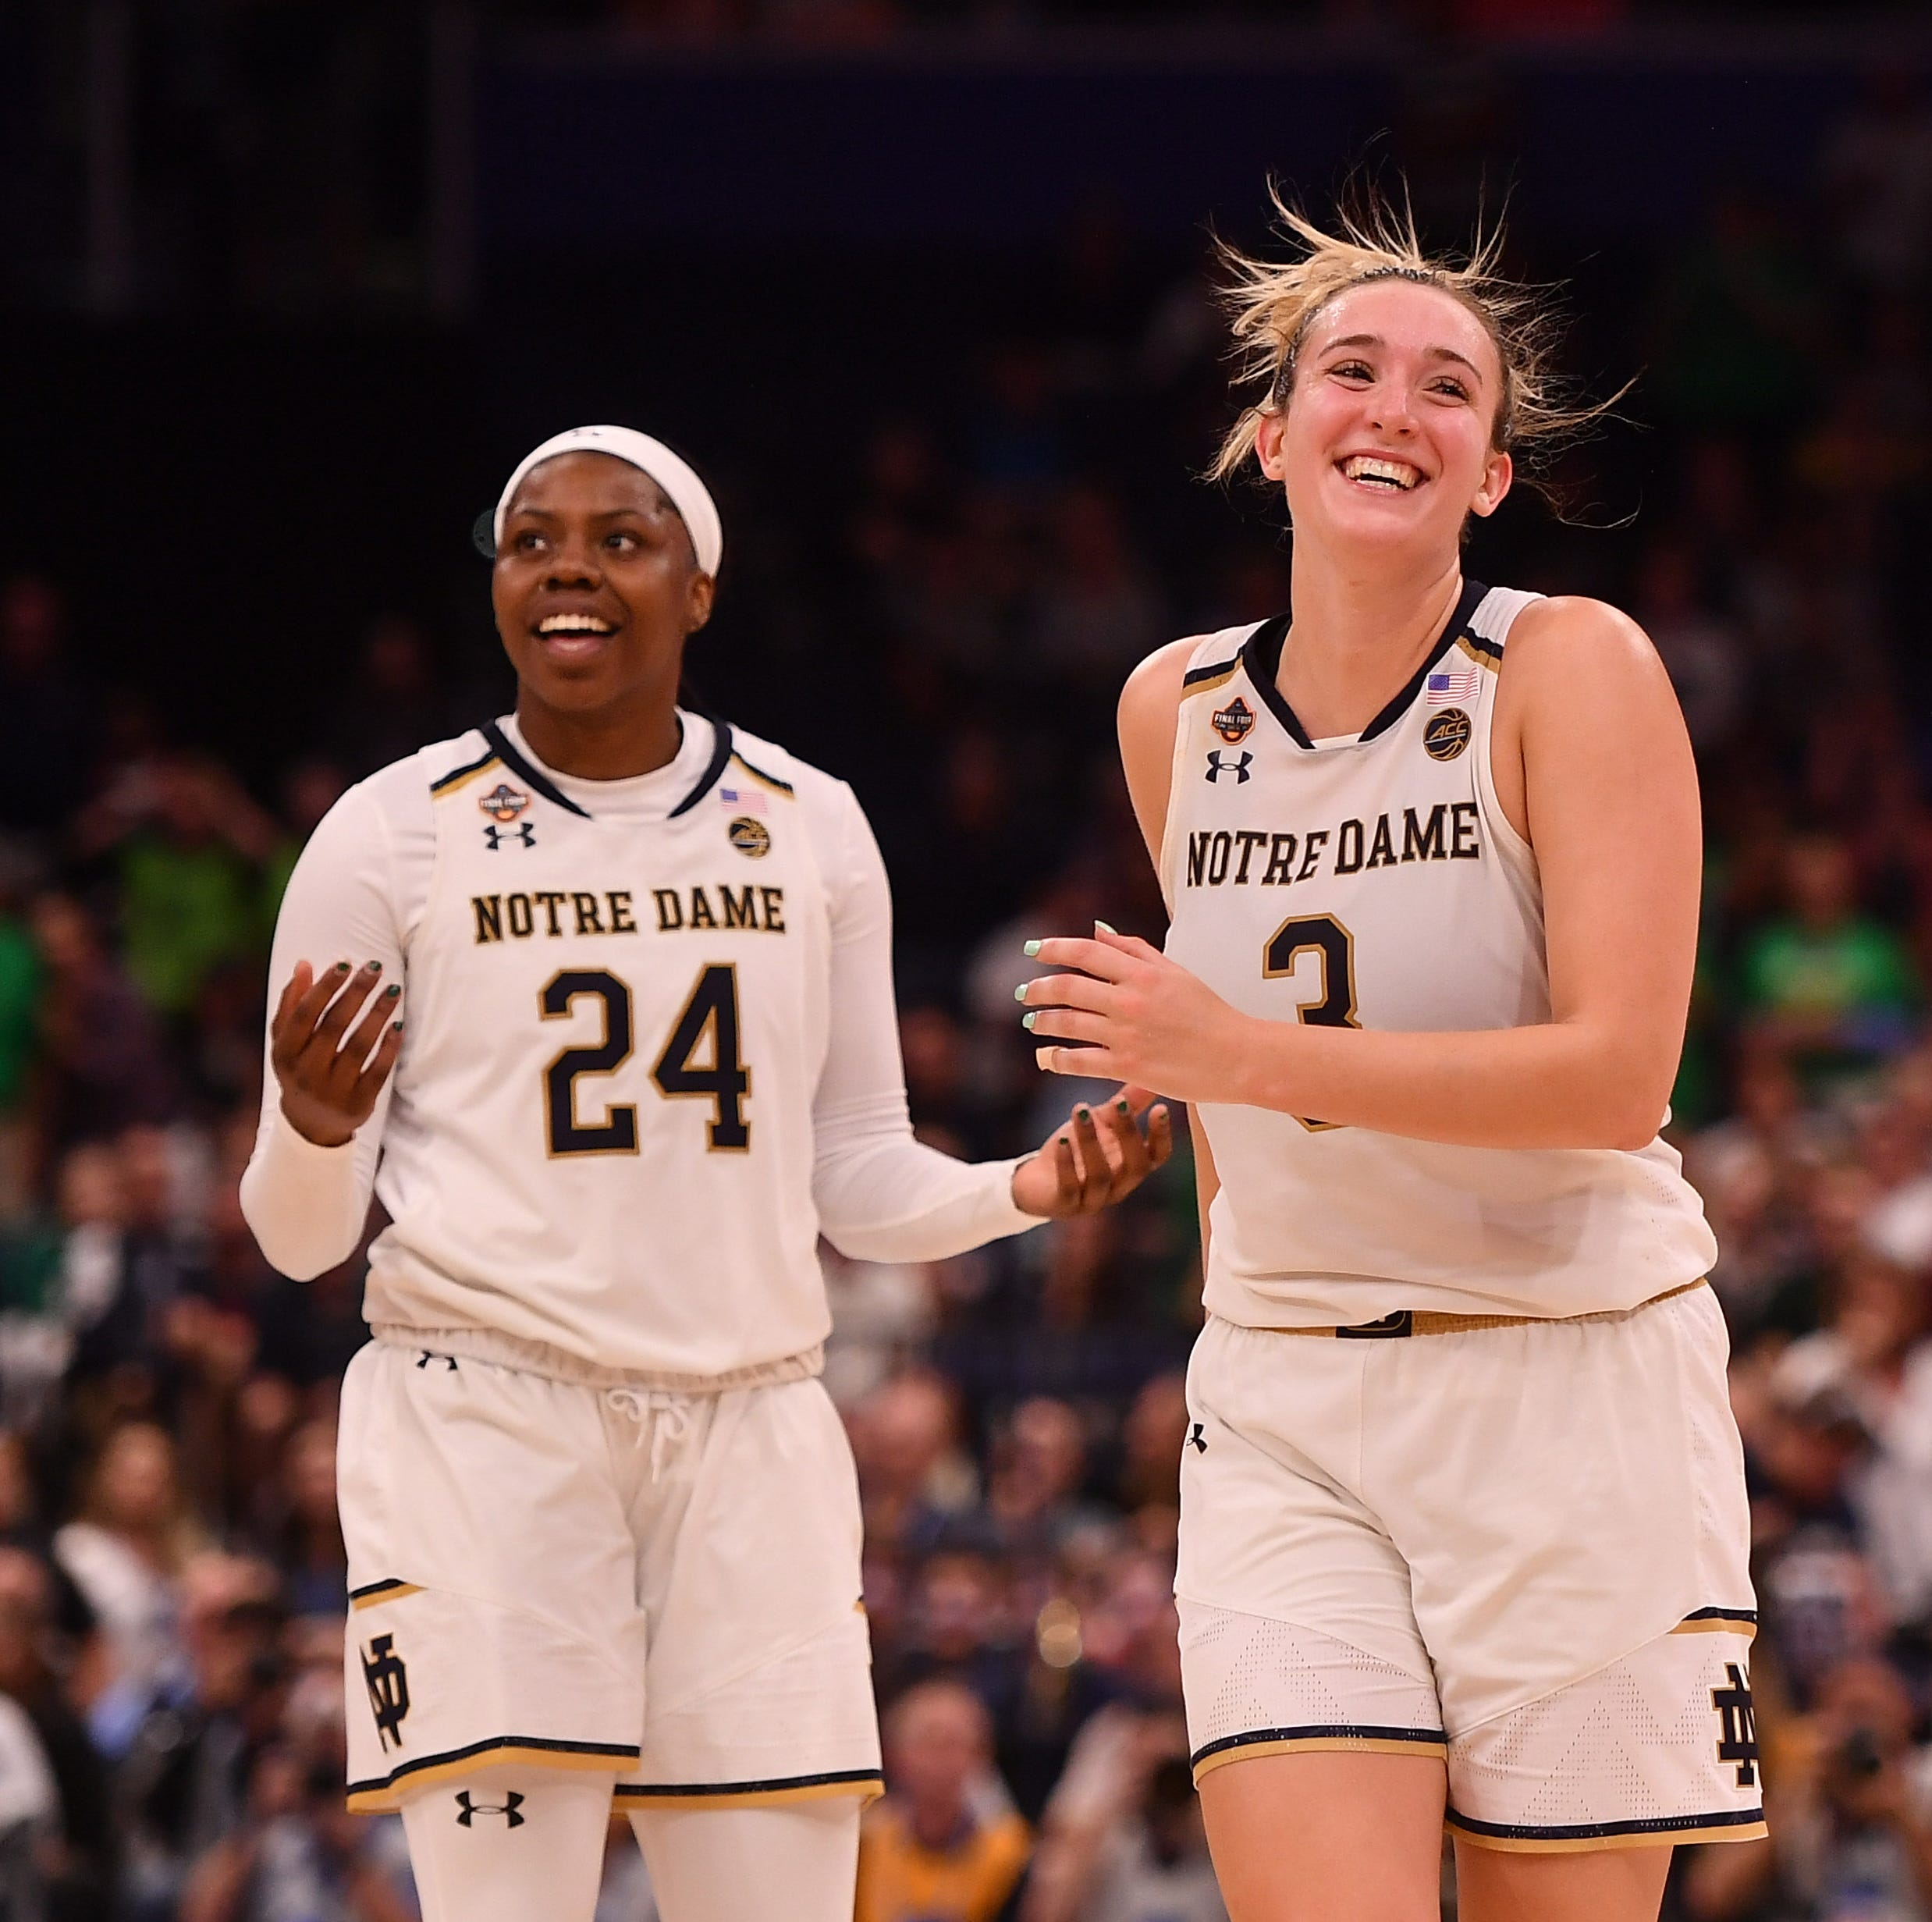 Notre Dame-UConn Final Four matchup doesn't disappoint as Irish rally for return trip to national championship game